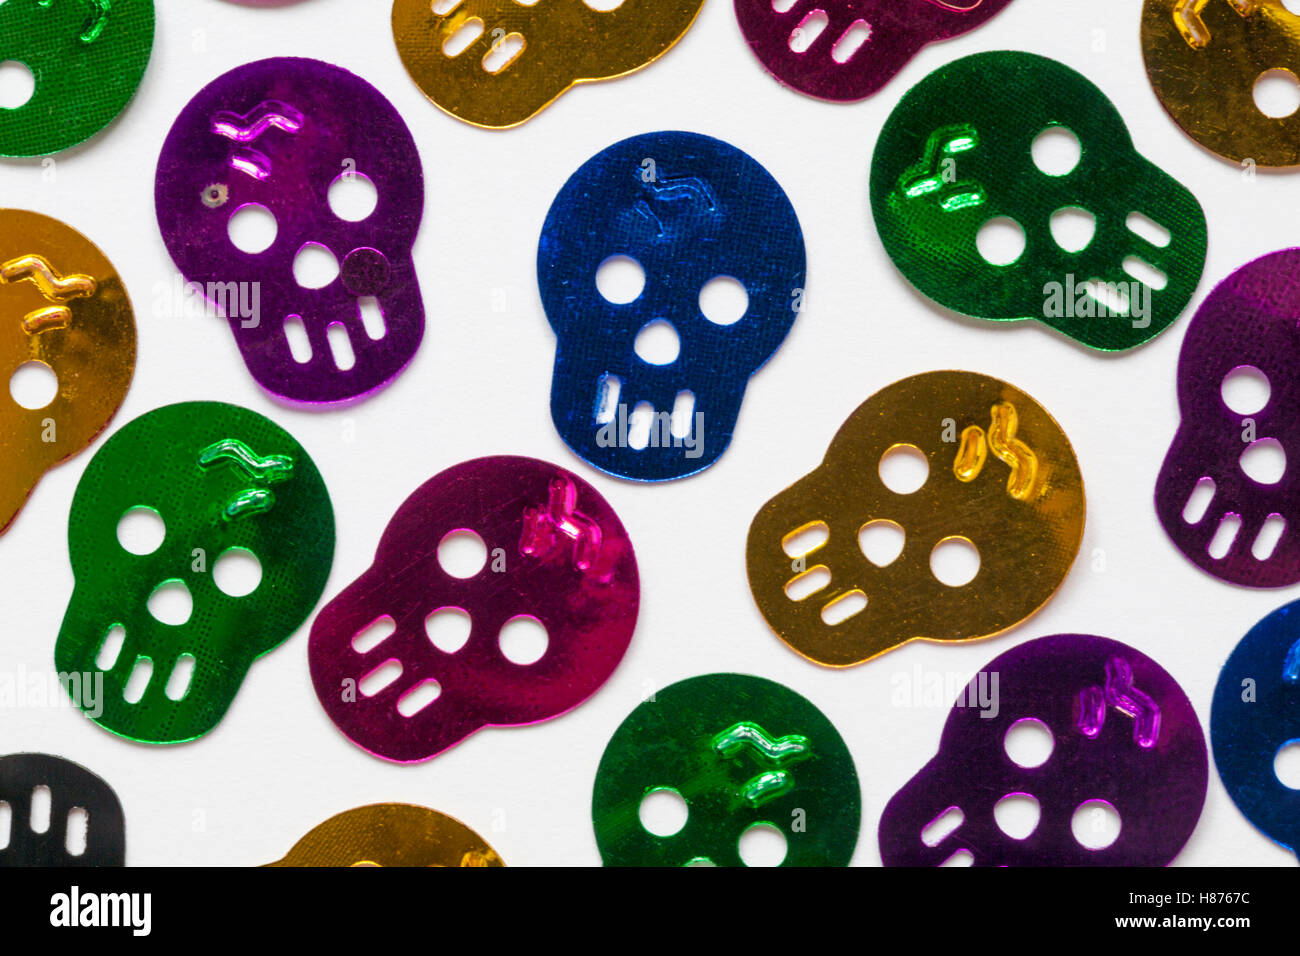 Halloween Mystical Confetti - skulls spread out on white background - Stock Image